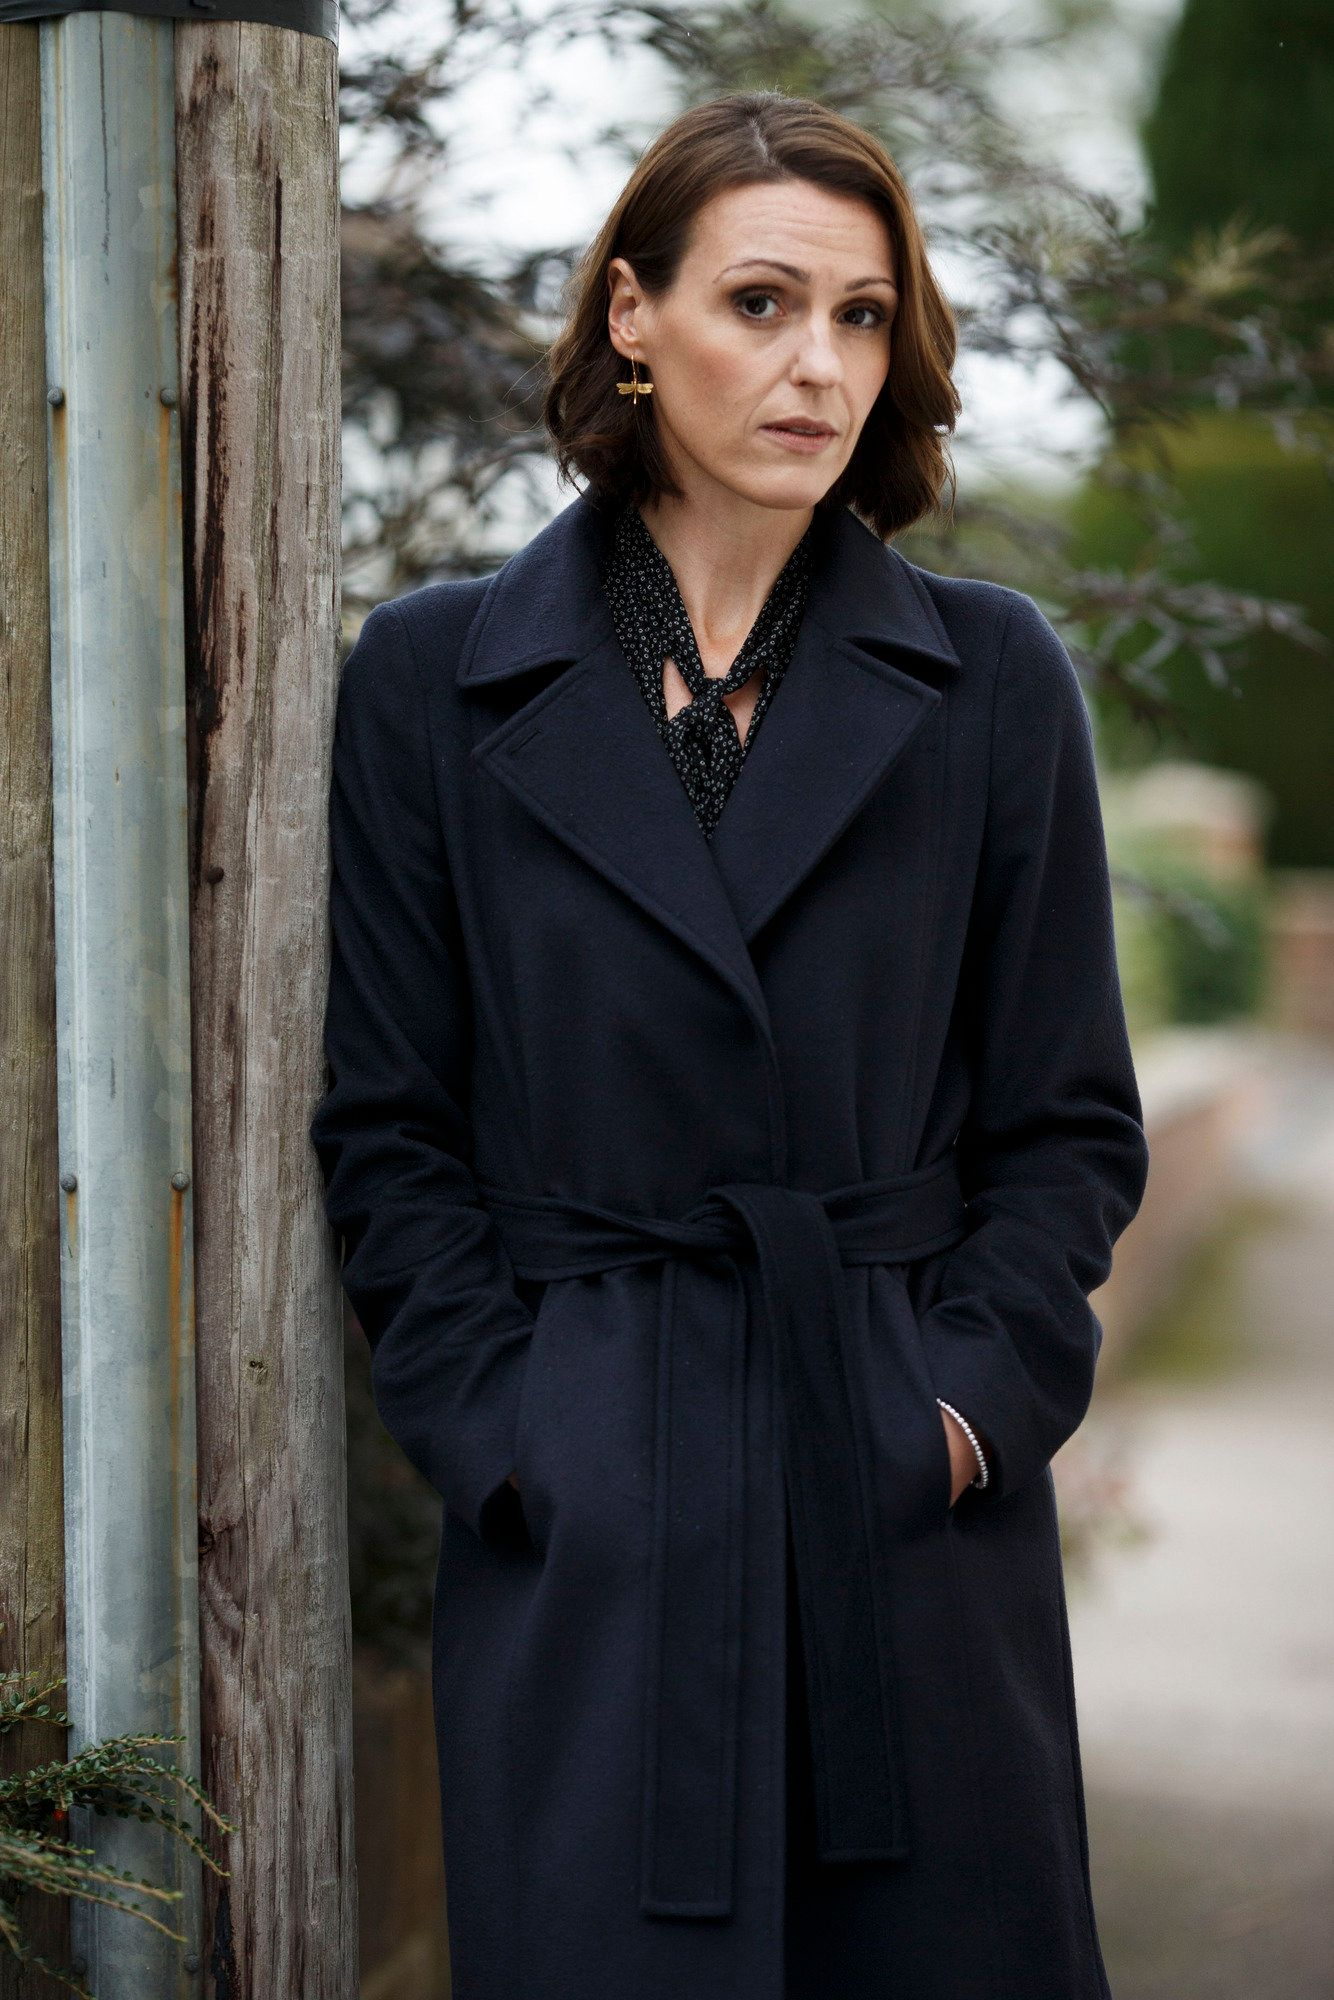 The Latest Dramatic Instalment Of 'Doctor Foster' Has Left Us With 12 Burning